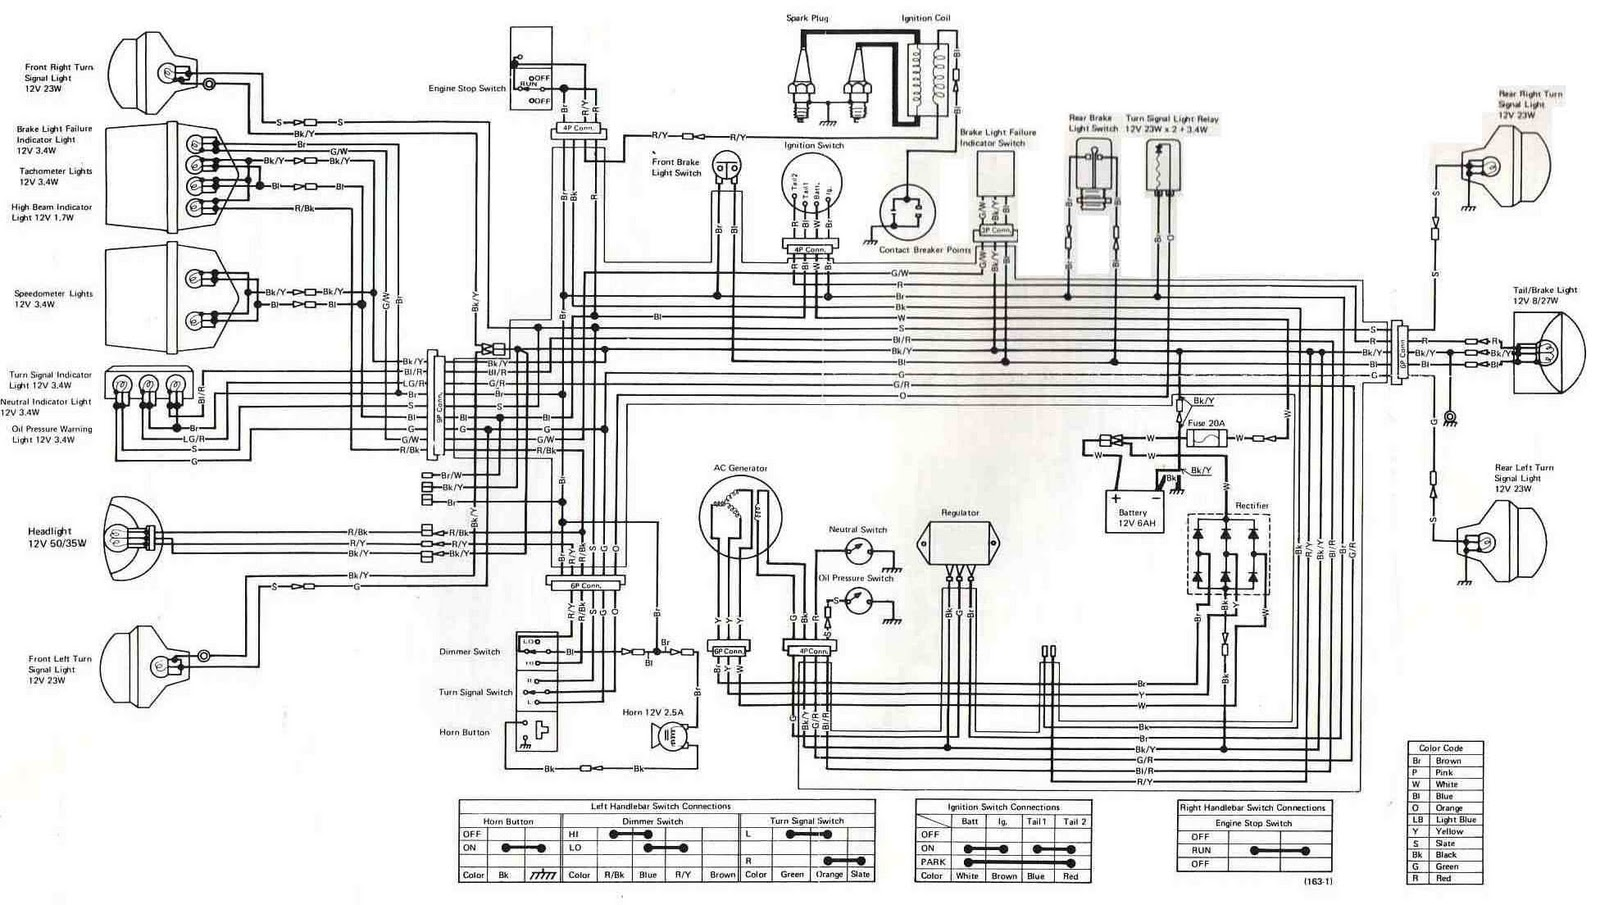 kawasaki kz400 1975 electrical wiring diagram all about wiring diagrams